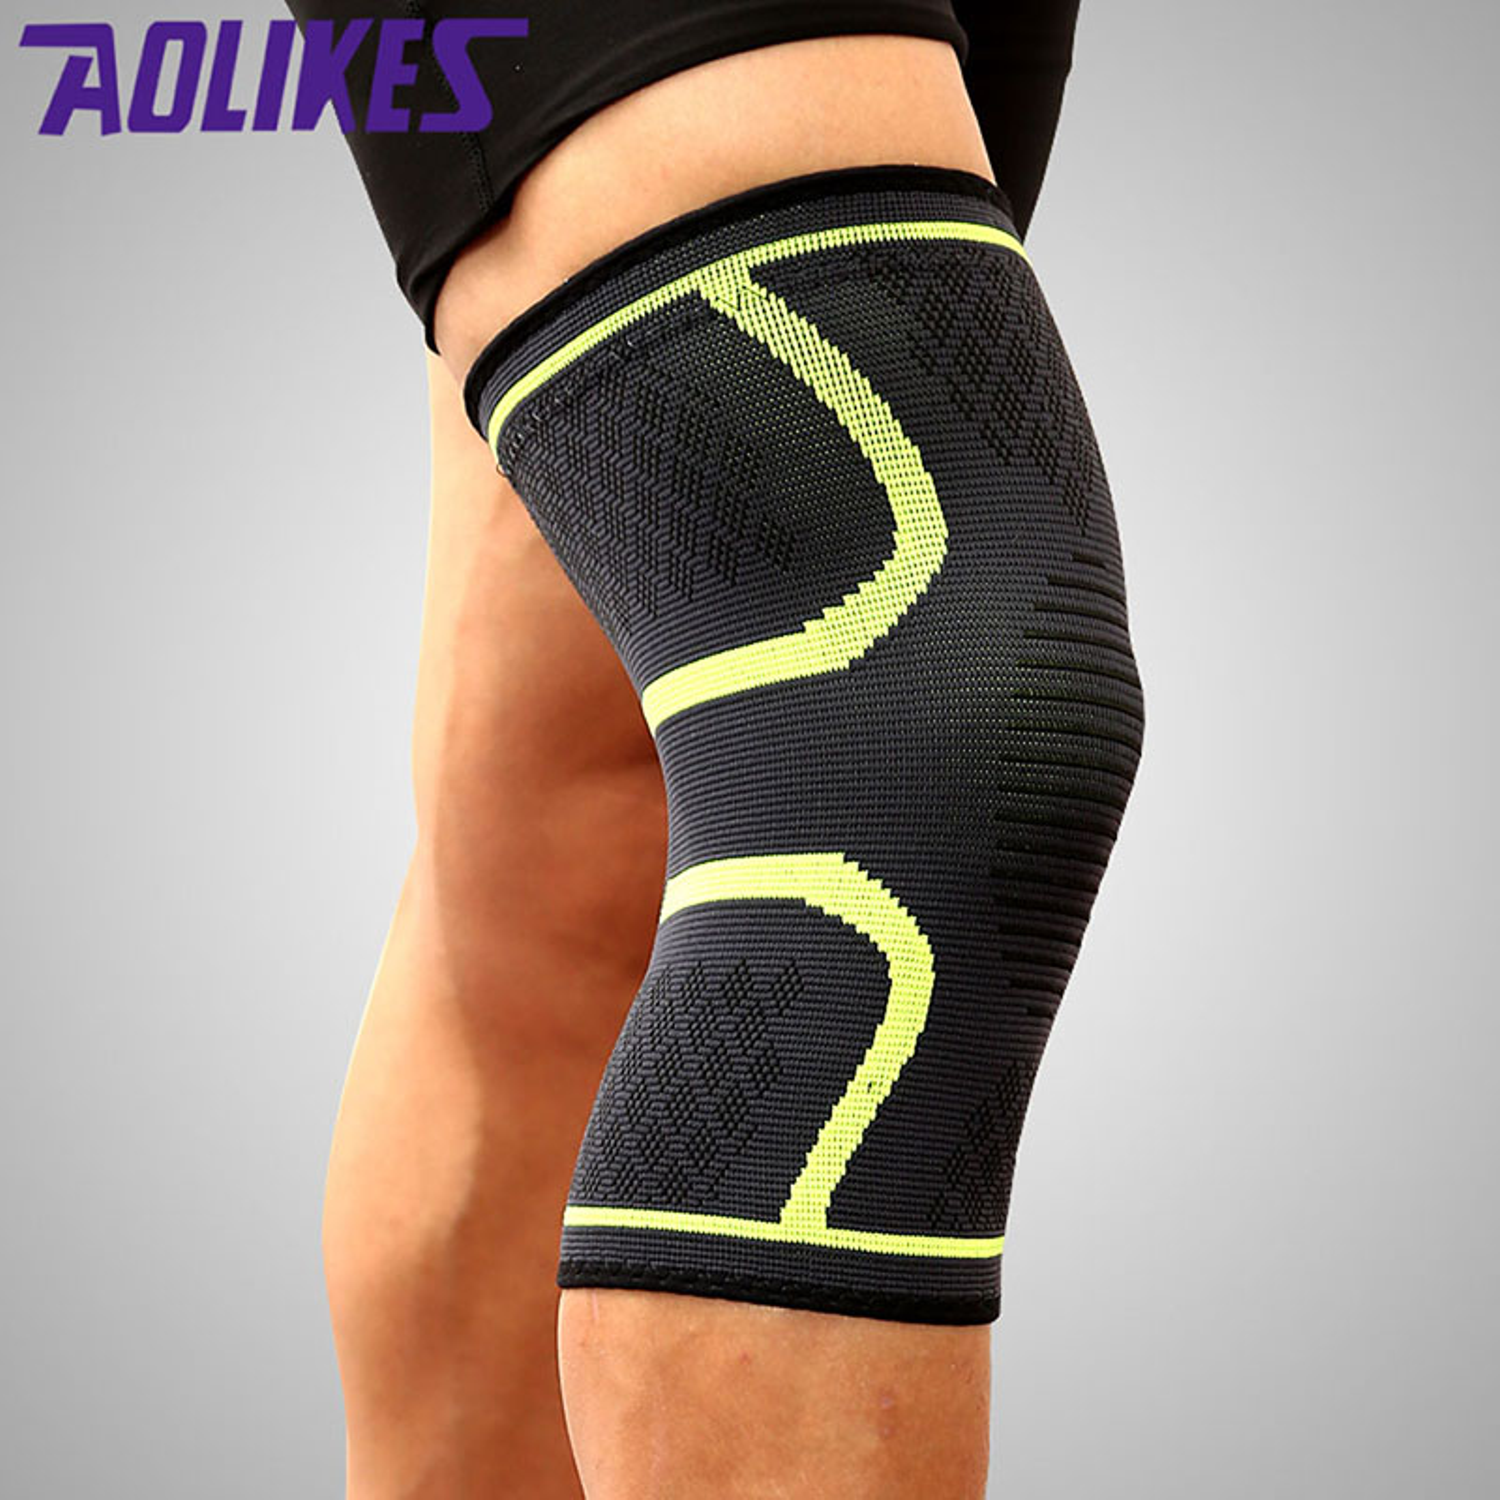 23ffbcf085 Knee Brace - Premium Compression Knee Sleeve - Knee Support Patella  Stabilizer for Meniscus Tear - Arthritis Pain - Best for Running - CrossFit  - Sports ...